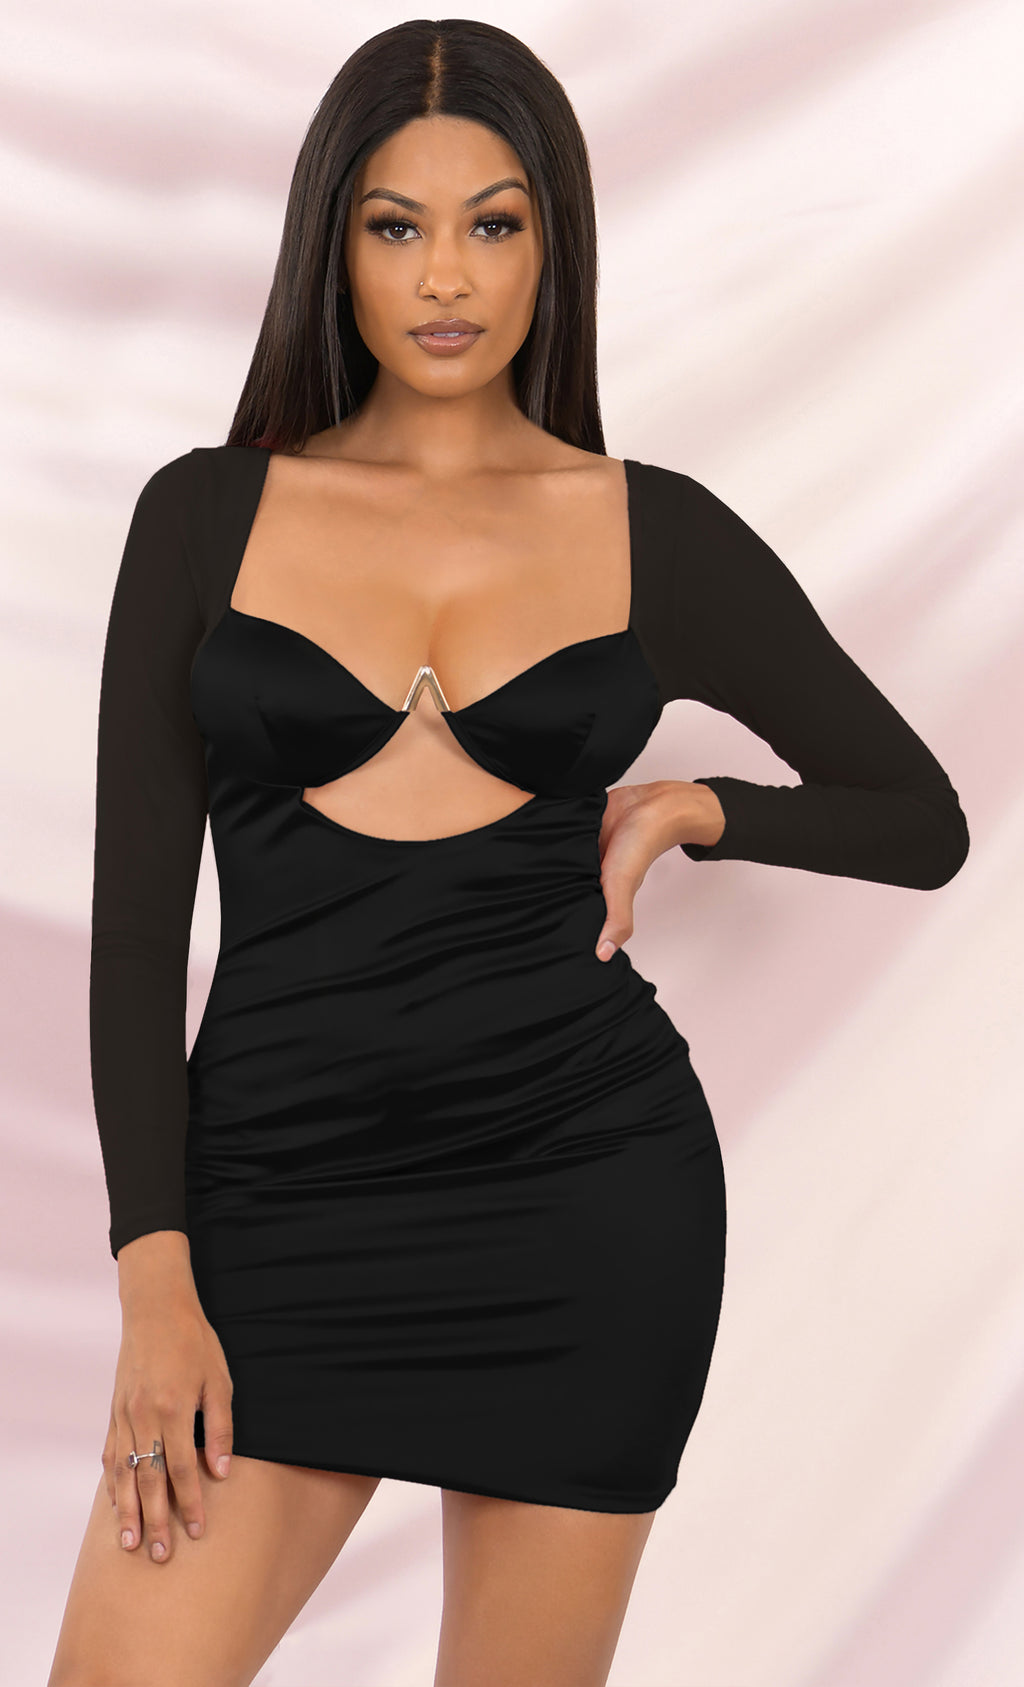 Hard To Believe Black Satin Mesh Long Sleeve Cut Out Metal Padded Bra Cup Bodycon Mini Dress